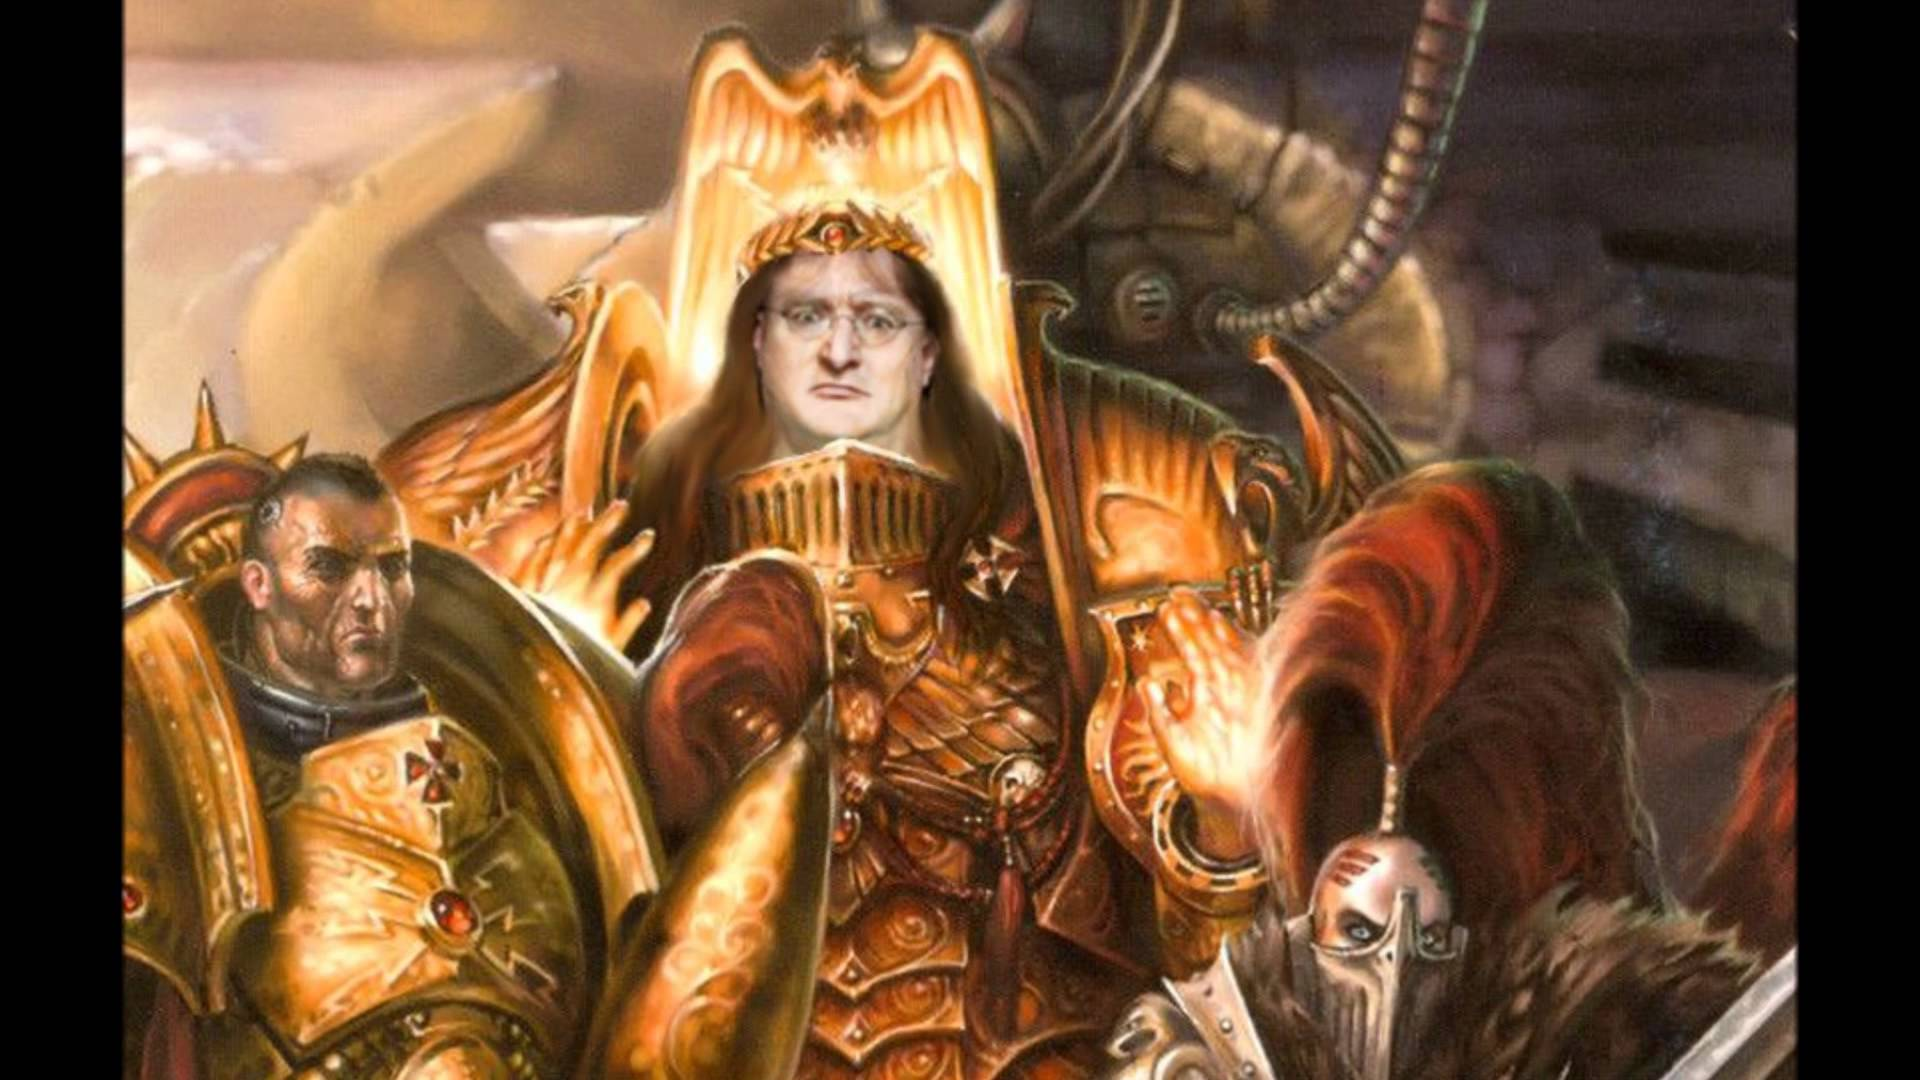 Gabe Newell, God-Emperor of All Gamerkind image - PC Gamers